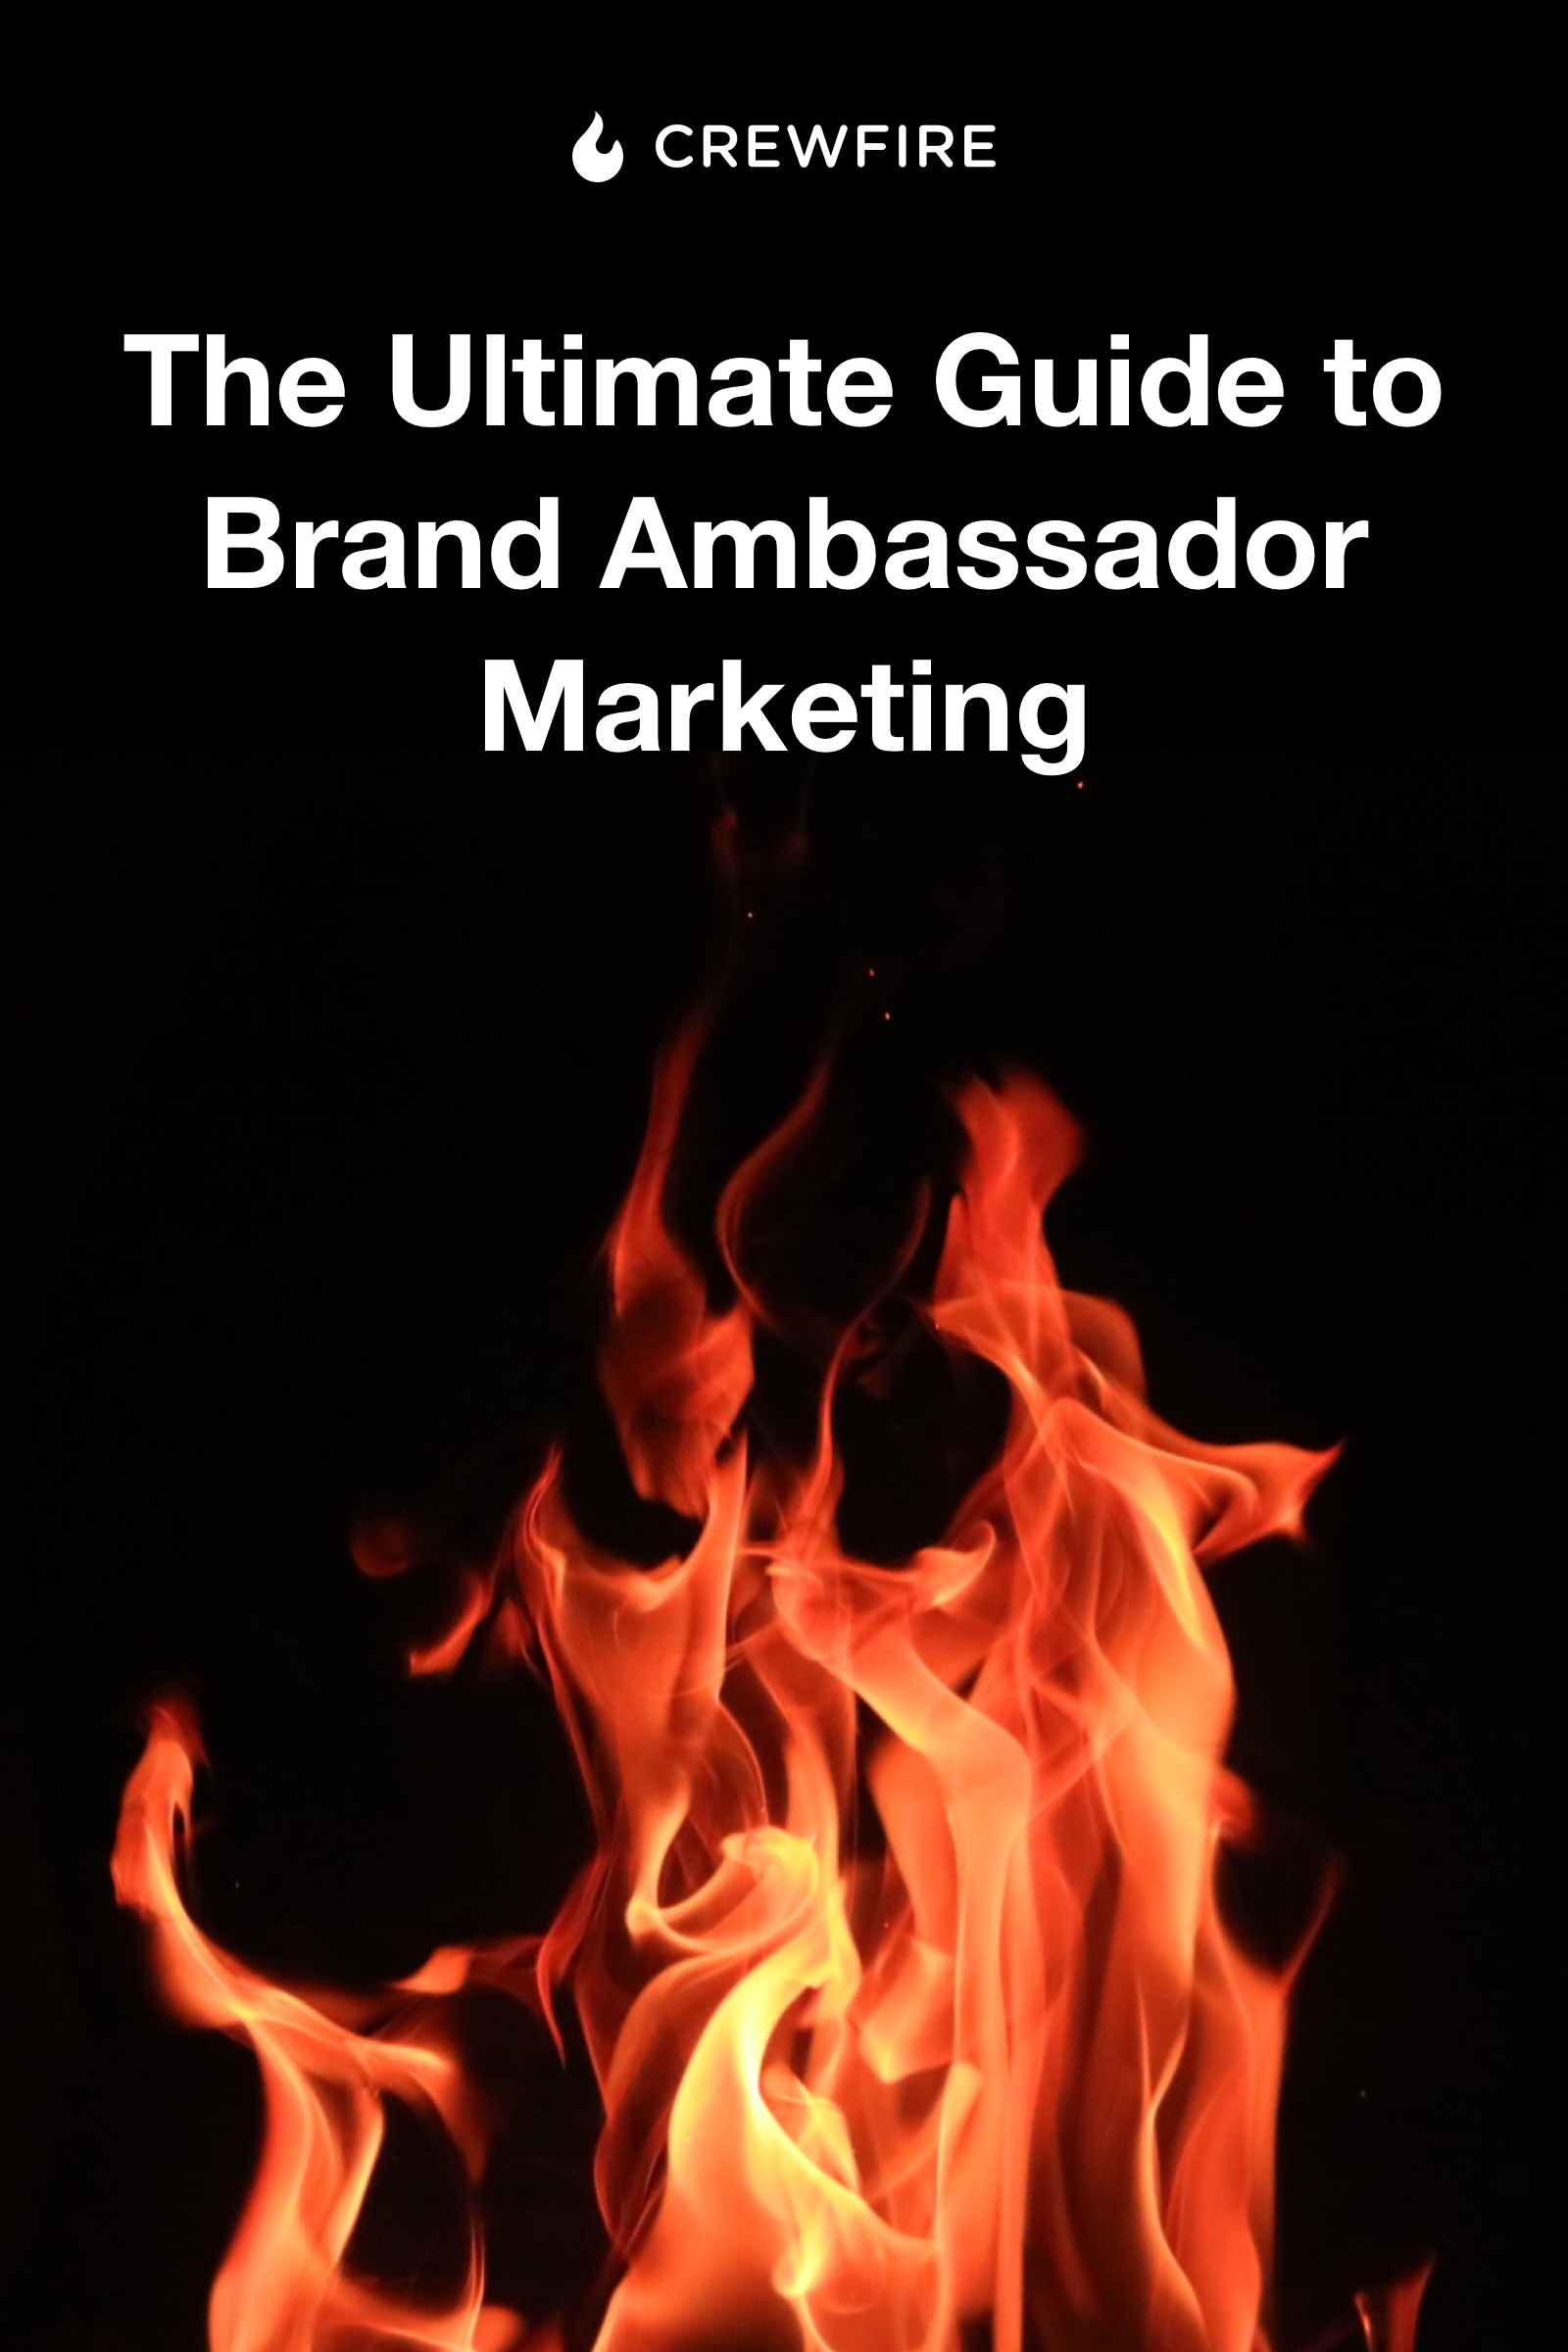 The Ultimate Guide to Brand Ambassador Marketing - CrewFire eBook